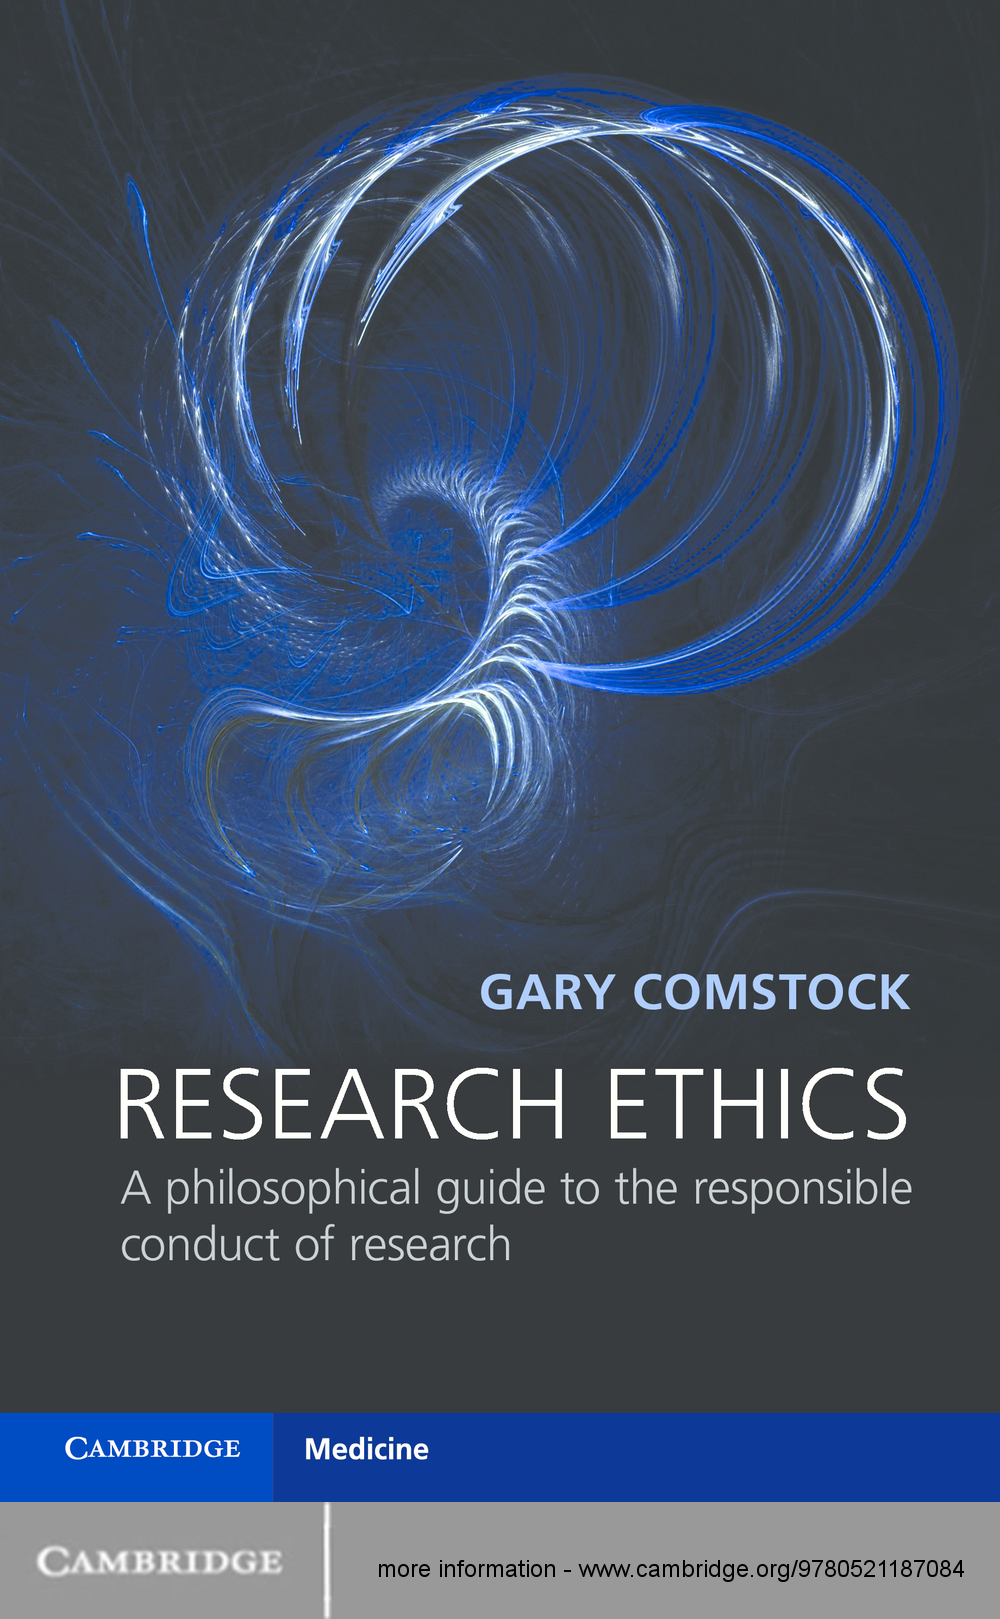 Research Ethics A Philosophical Guide to the Responsible Conduct of Research